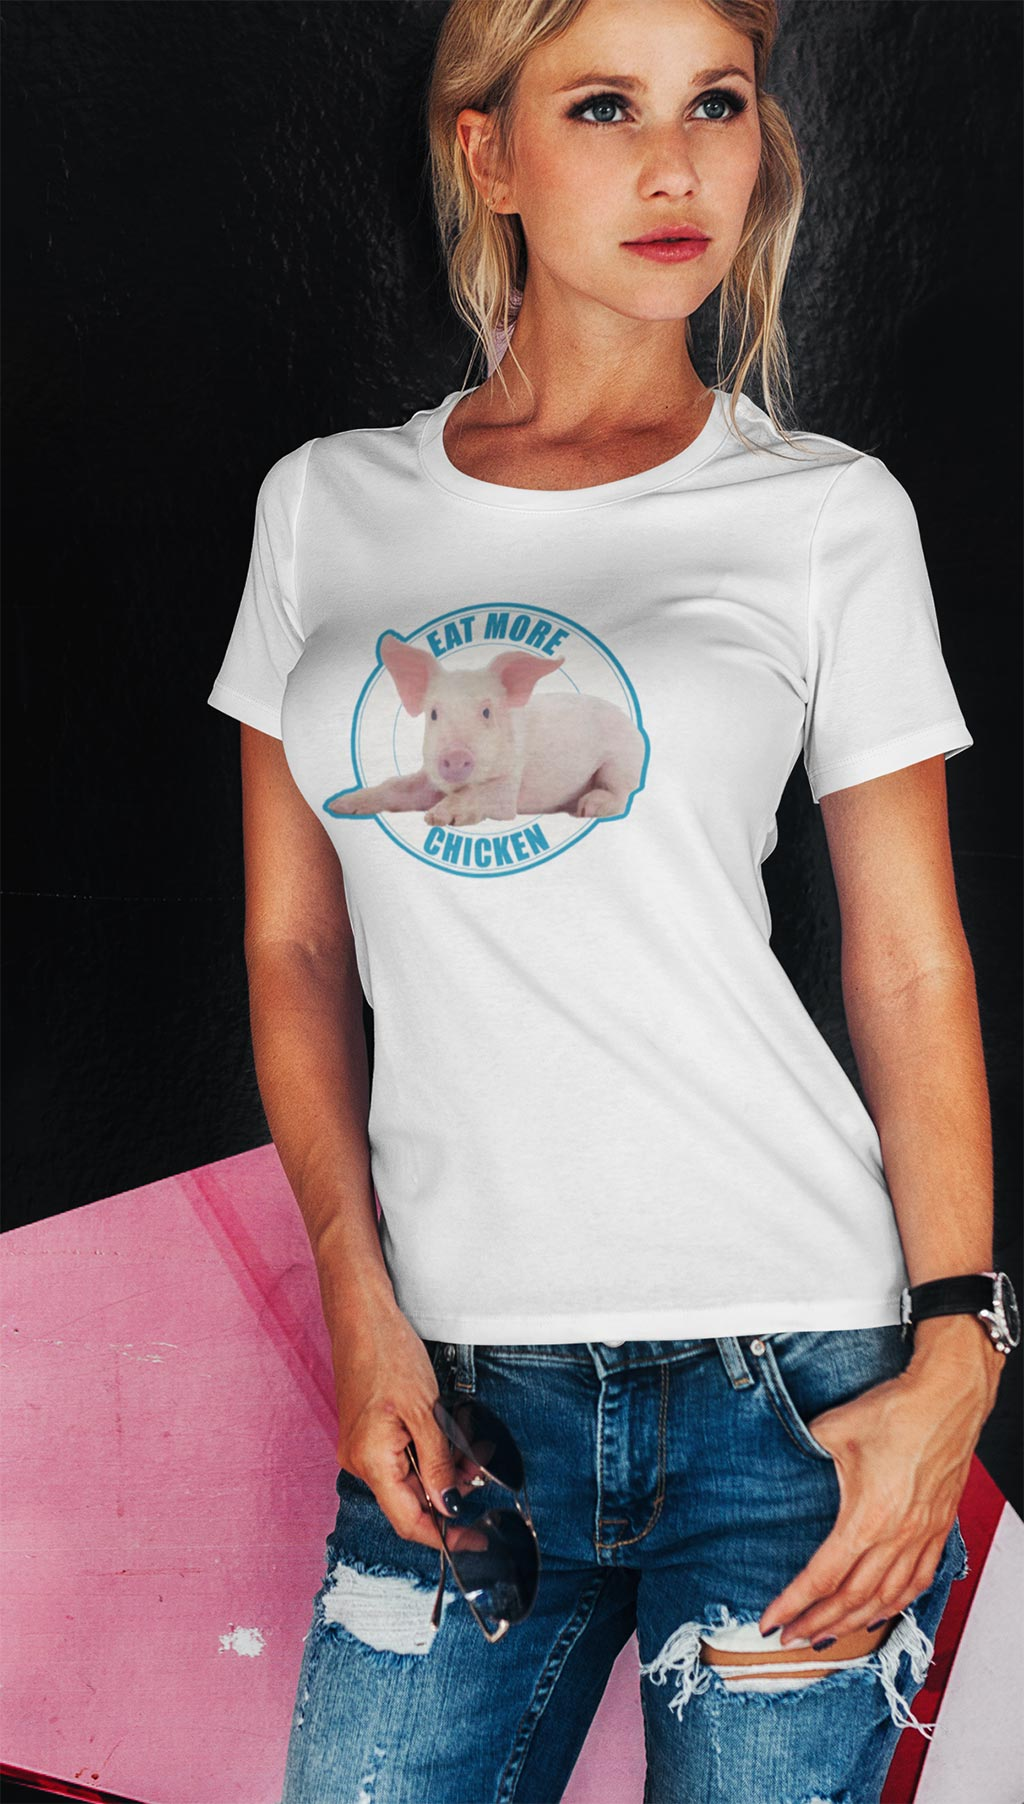 Eat more chicken. A beautiful blonde woman wearing a cute piglet t-shirt.